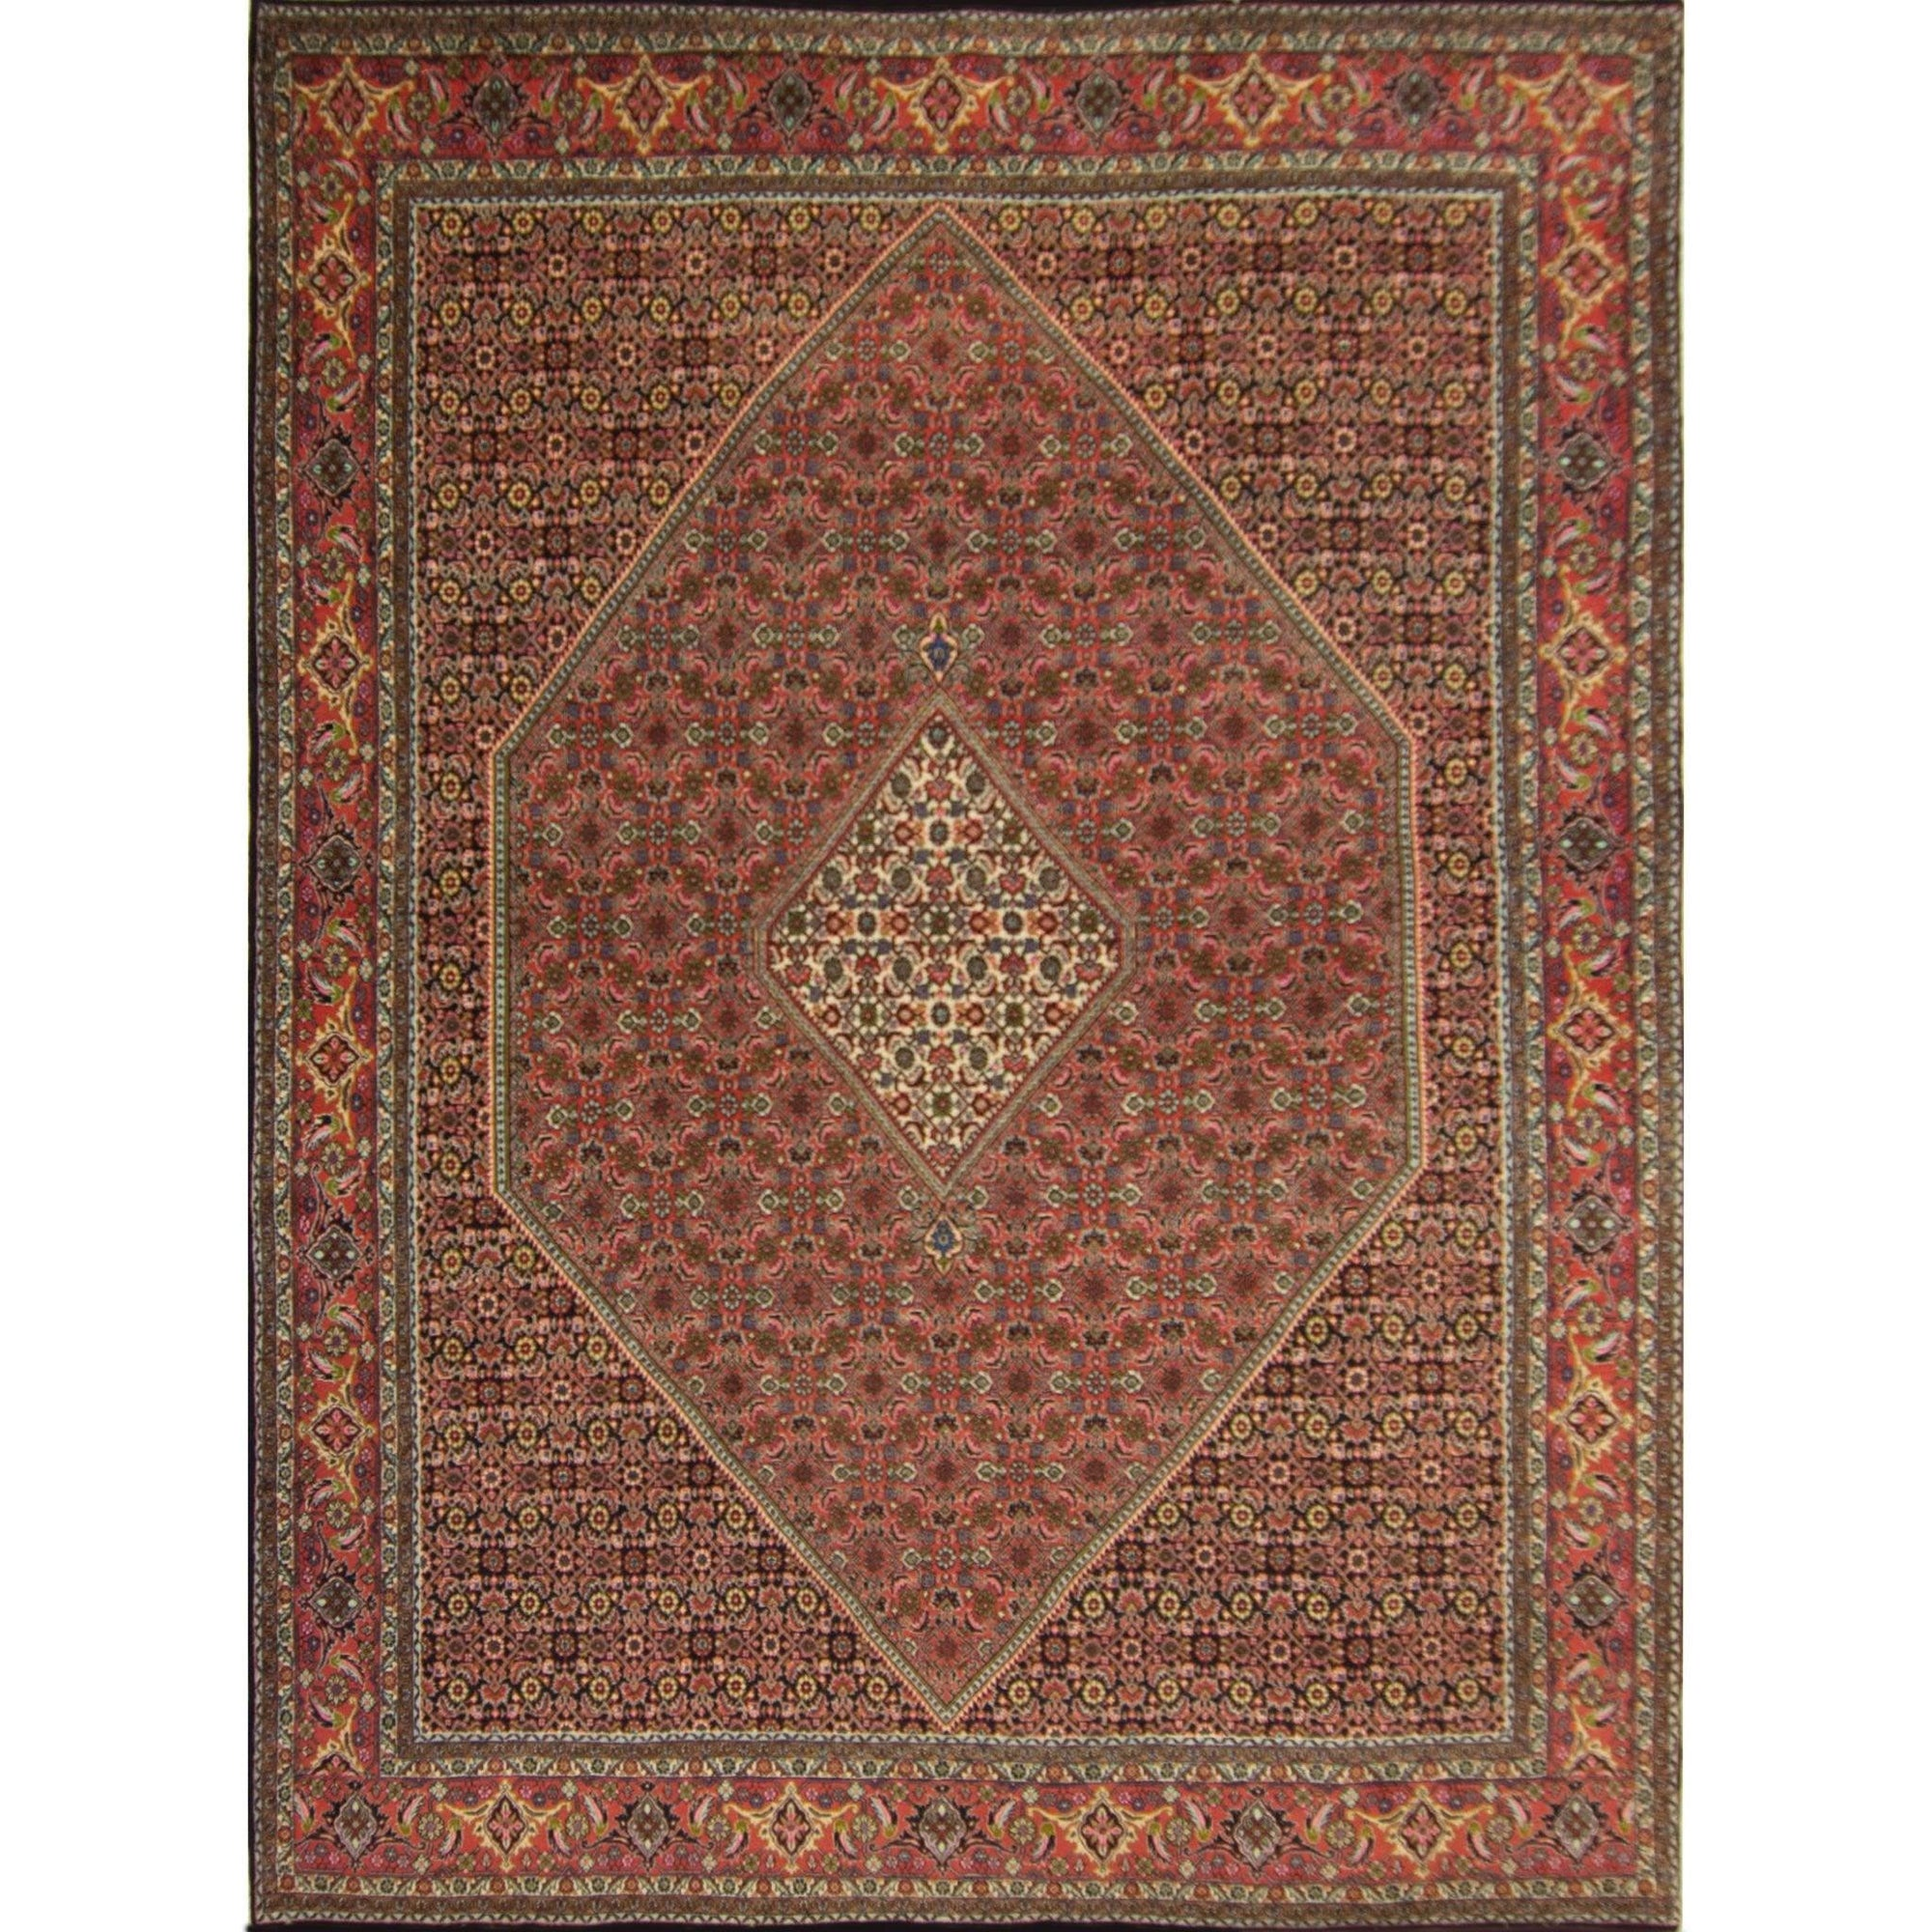 Super Fine Hand-knotted Persian Wool Bijar Rug 266cm x 335cm Persian-Rug | House-of-Haghi | NewMarket | Auckland | NZ | Handmade Persian Rugs | Hand Knotted Persian Rugs